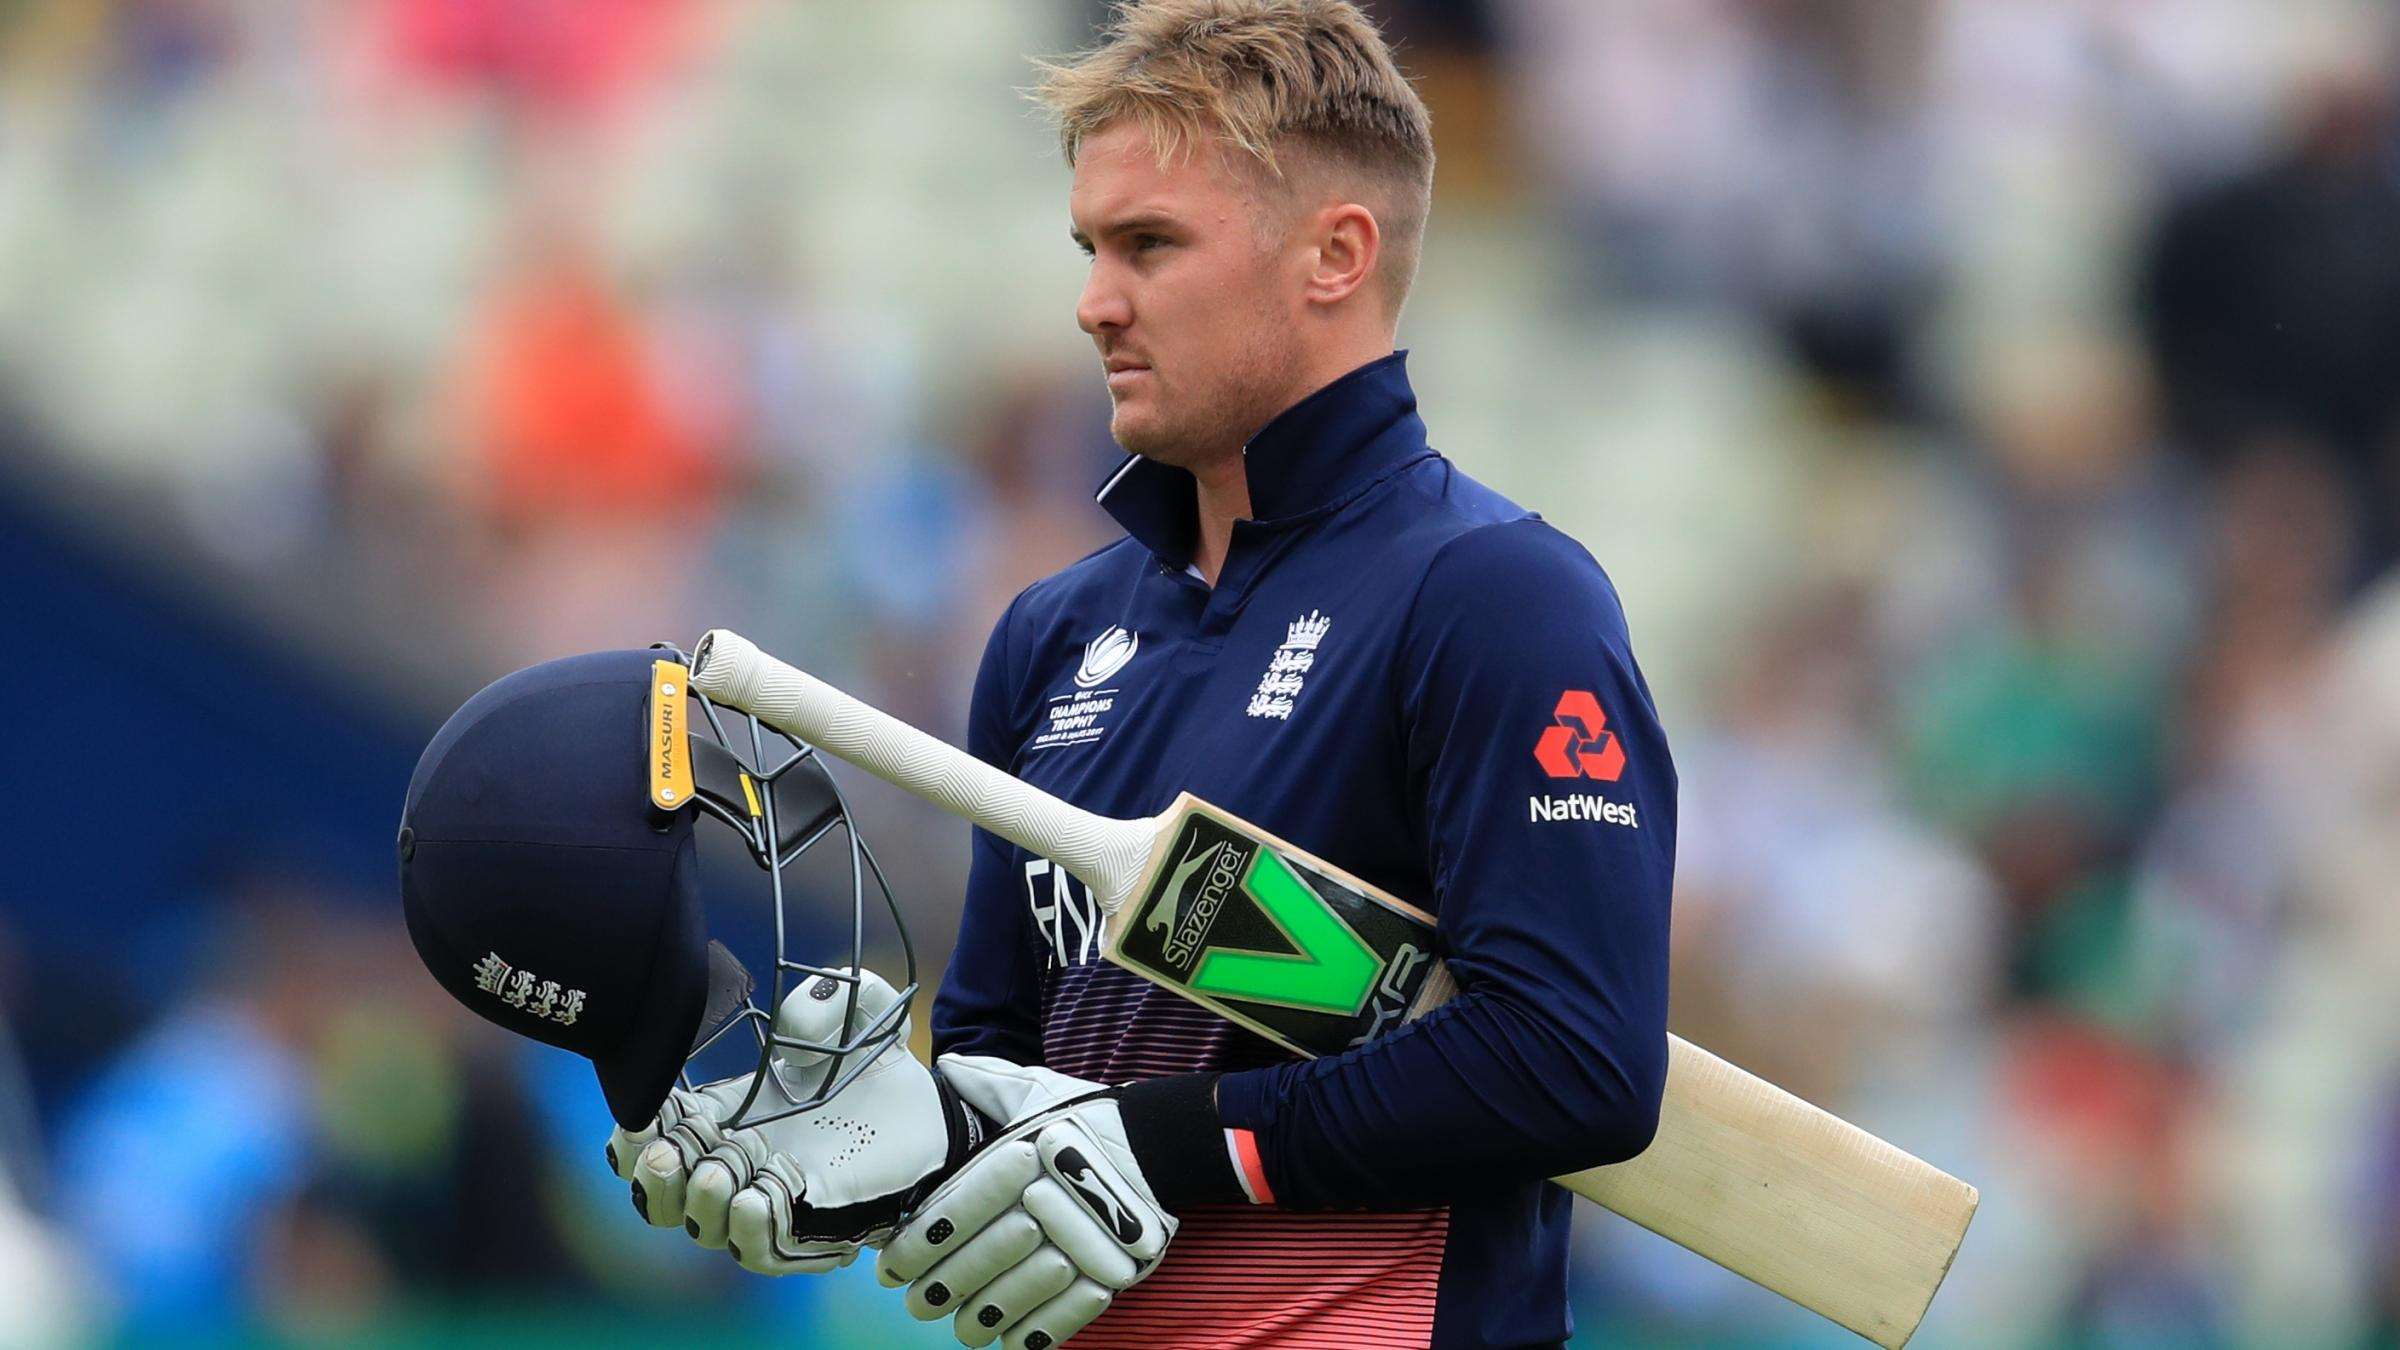 Jonny Bairstow replaces Jason Roy for England against Pakistan